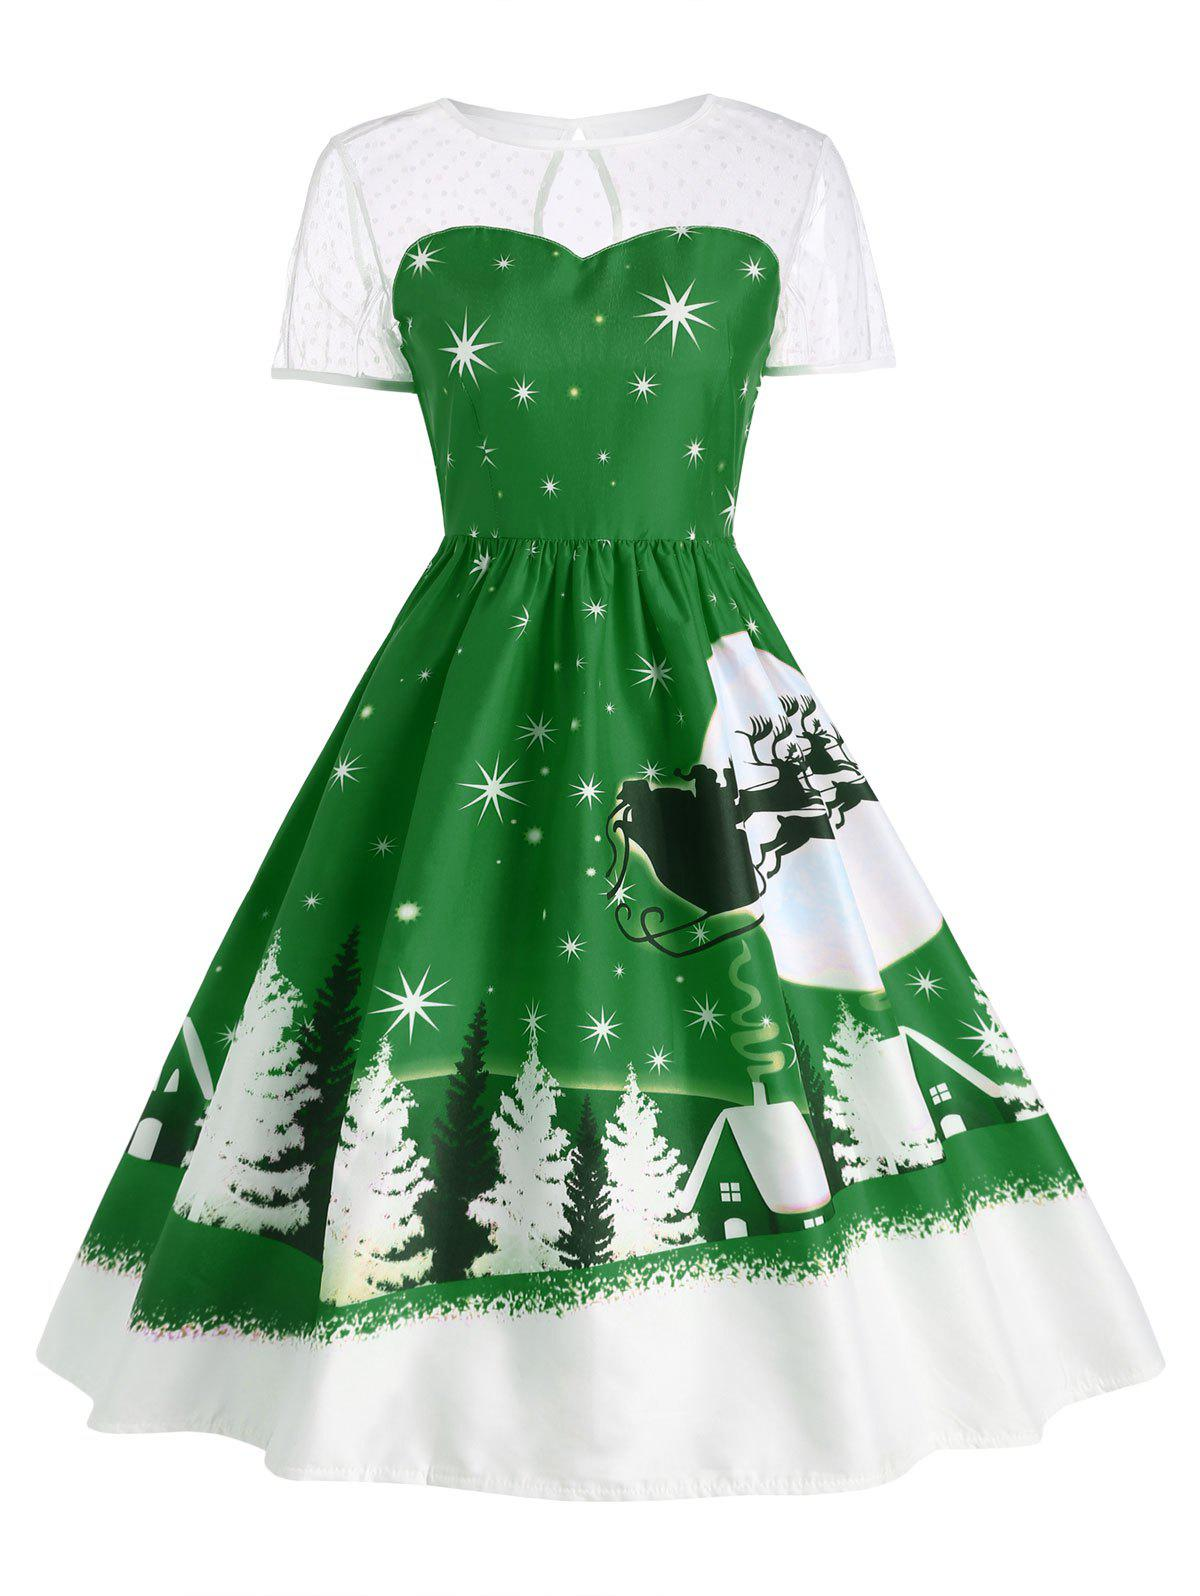 Santa Claus Deer Vintage Christmas DressWOMEN<br><br>Size: L; Color: GREEN; Style: Cute; Material: Polyester; Silhouette: Ball Gown; Dresses Length: Mid-Calf; Neckline: Round Collar; Sleeve Length: Short Sleeves; Pattern Type: Print; With Belt: No; Season: Fall,Winter; Weight: 0.2400kg; Package Contents: 1 x Dress;